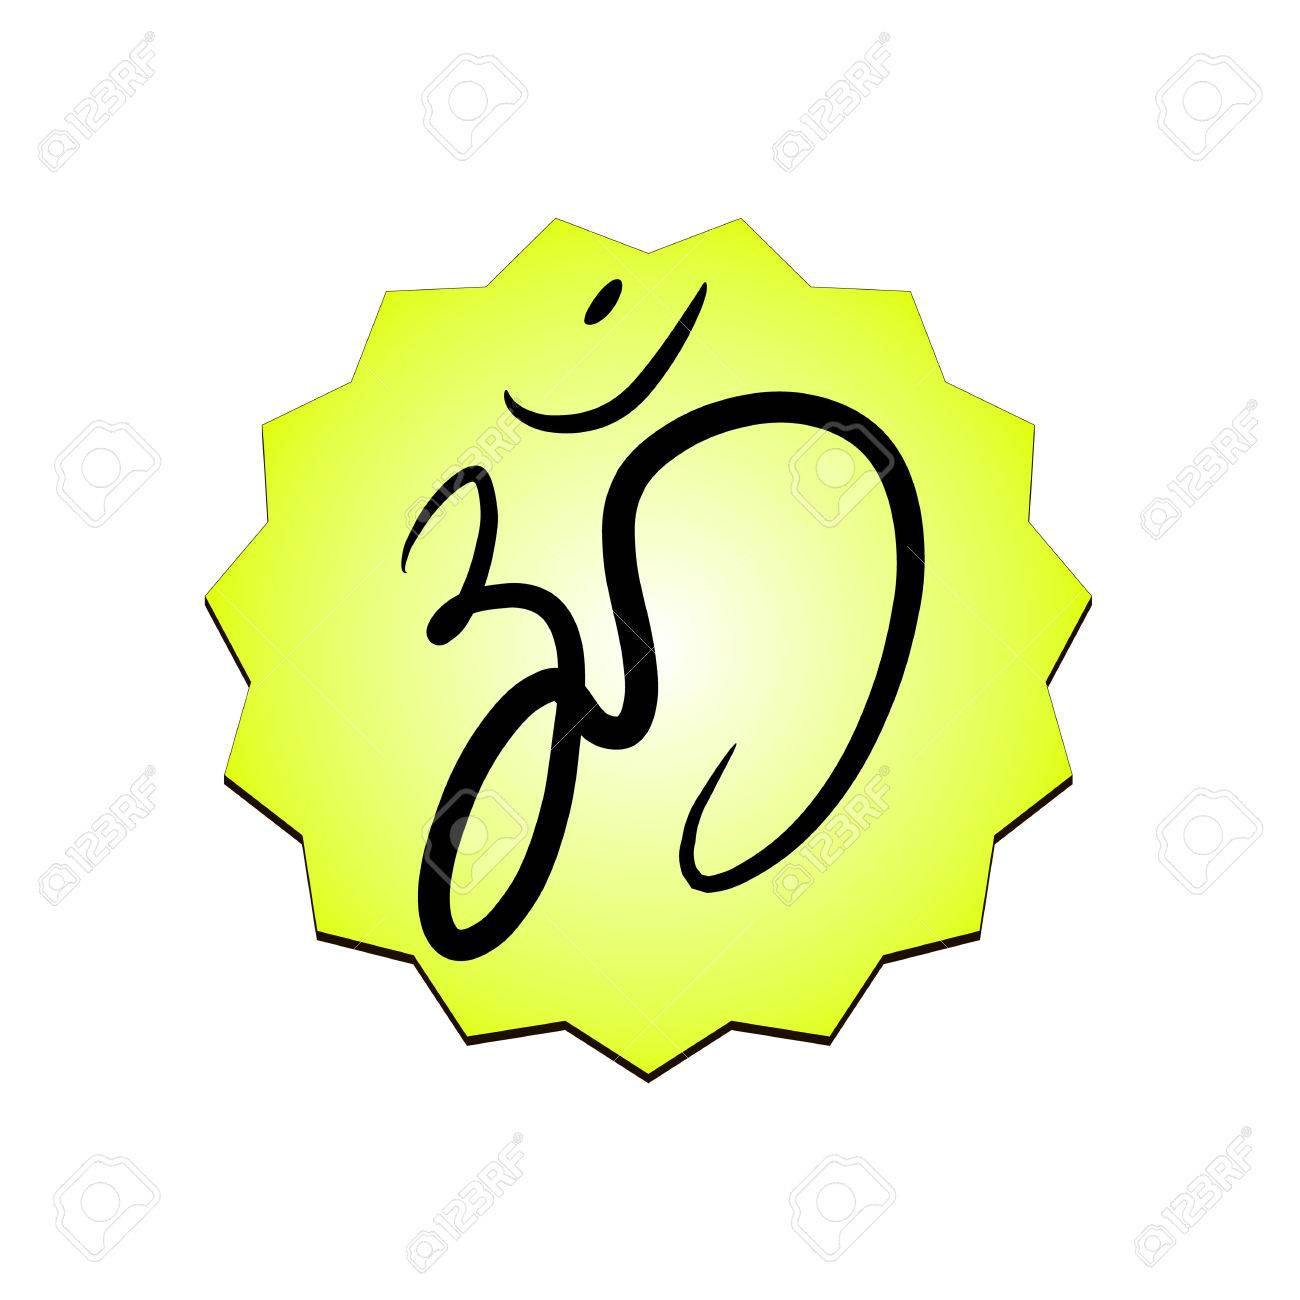 Om Sign Painted By Hand The Sacred Symbol In Buddhism And Hinduism